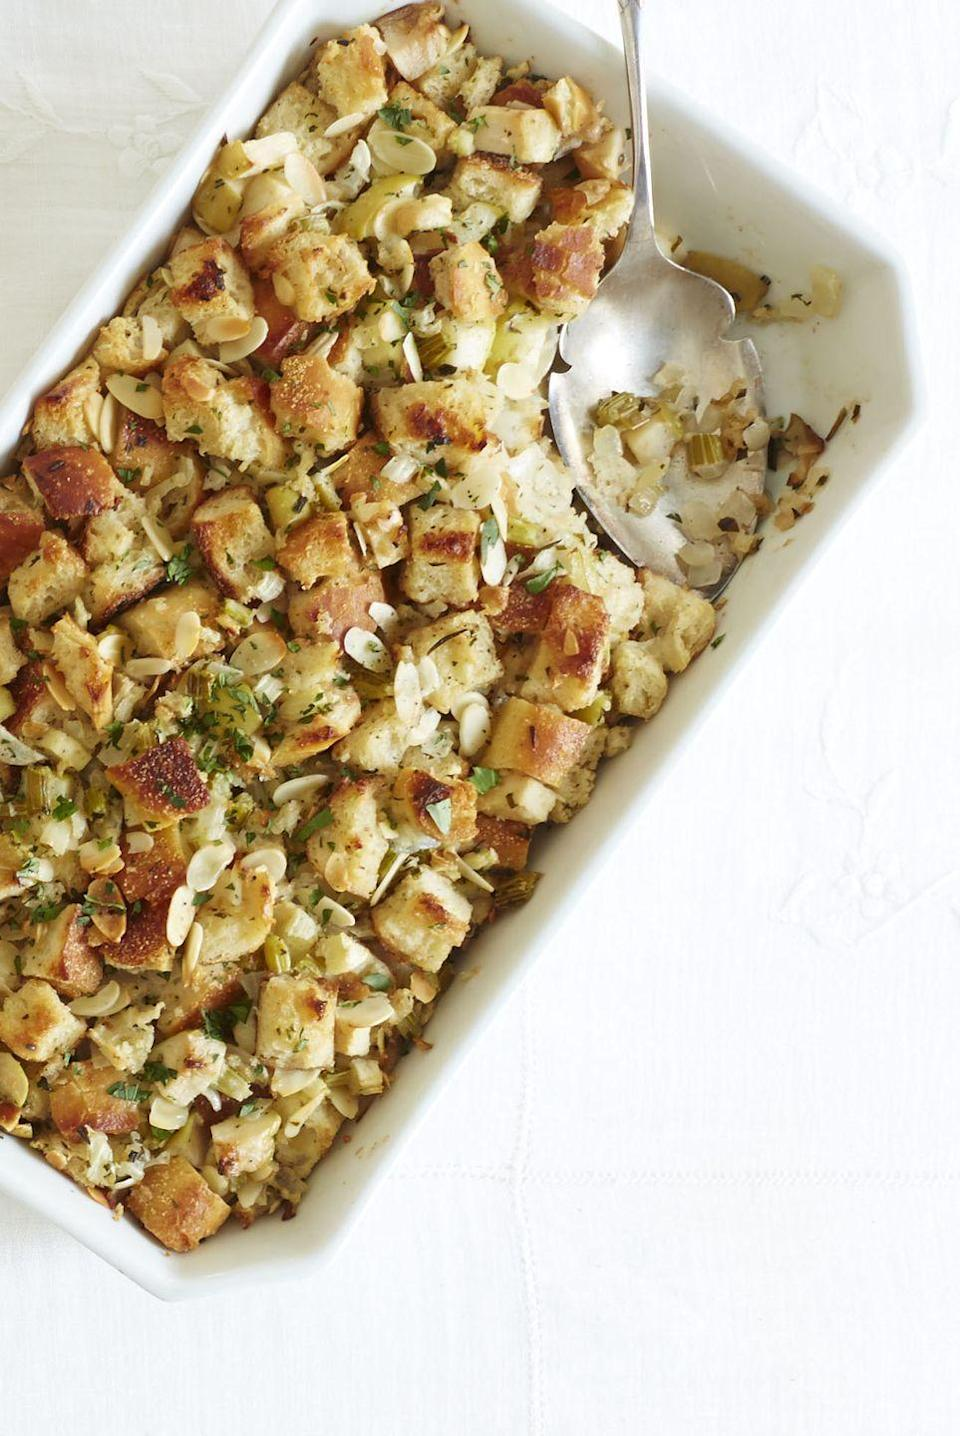 """<p>This fall stuffing is studded with fresh seasonal flavor. Apples lend it sweetness, while almonds give it a crunch. <br></p><p><em><a href=""""https://www.goodhousekeeping.com/food-recipes/a15424/herb-apple-stuffing-recipe-ghk1113/"""" rel=""""nofollow noopener"""" target=""""_blank"""" data-ylk=""""slk:Get the recipe for Herb and Apple Stuffing »"""" class=""""link rapid-noclick-resp"""">Get the recipe for Herb and Apple Stuffing »</a></em></p><p><strong>RELATED: </strong><a href=""""https://www.goodhousekeeping.com/holidays/thanksgiving-ideas/g2763/leftover-stuffing-recipes/"""" rel=""""nofollow noopener"""" target=""""_blank"""" data-ylk=""""slk:20 Leftover Stuffing Recipes to Make After Thanksgiving"""" class=""""link rapid-noclick-resp"""">20 Leftover Stuffing Recipes to Make After Thanksgiving</a></p>"""